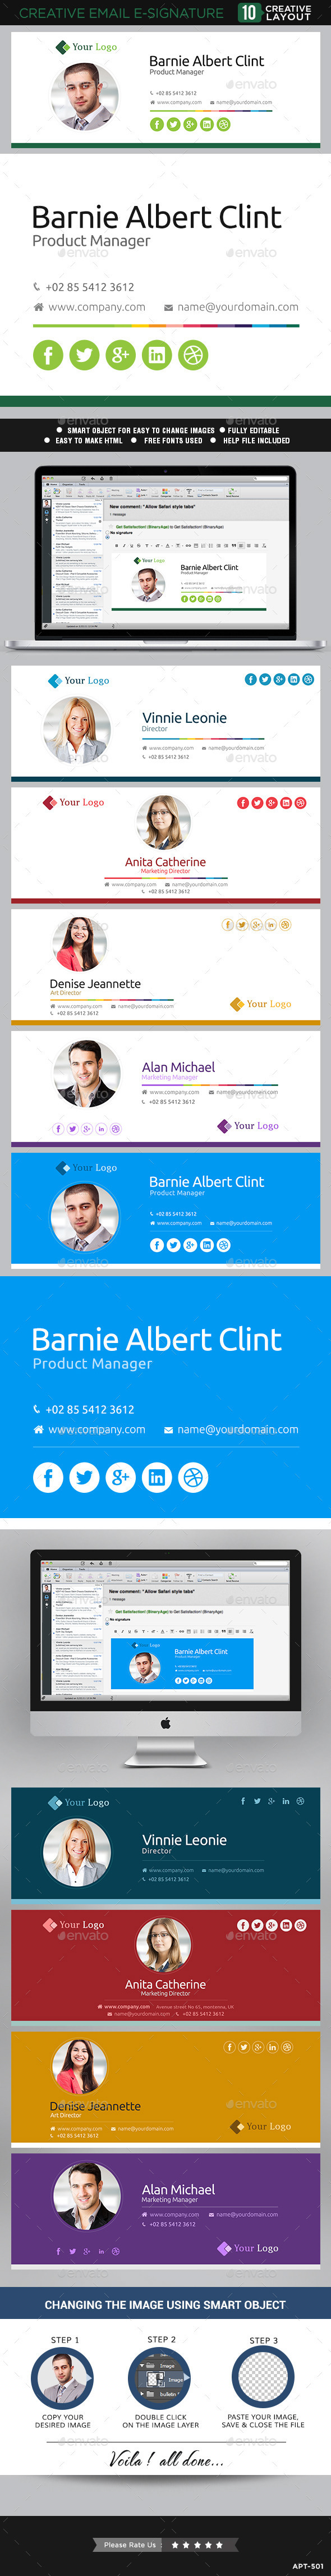 Email E Signature Templates 10 Designs On Behance